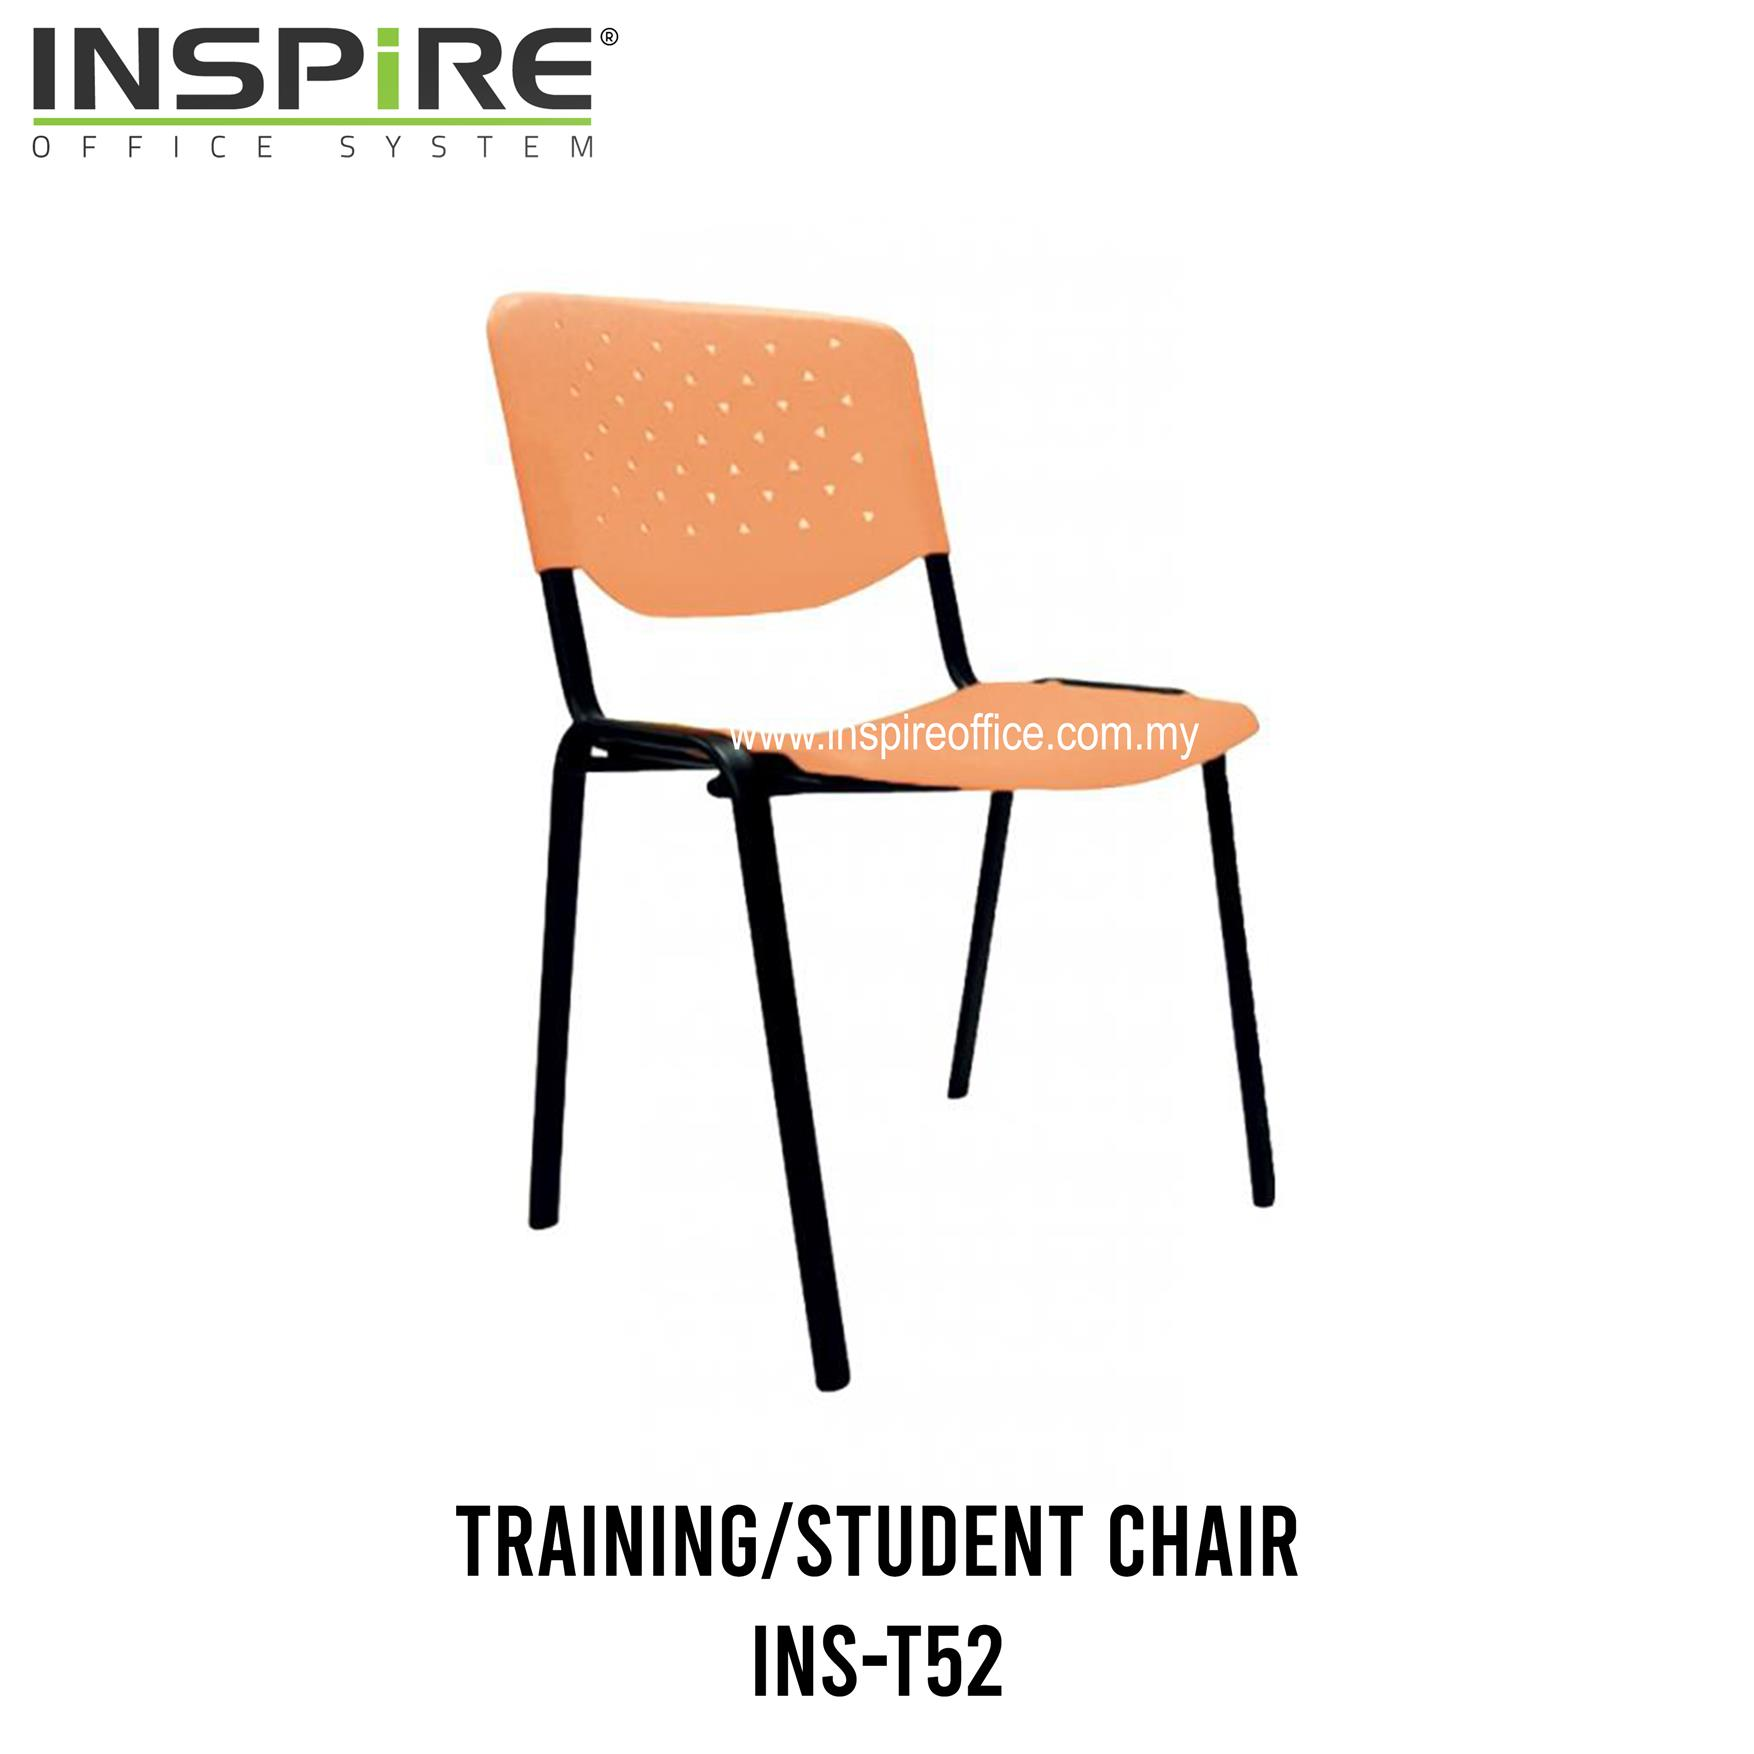 INS-T52 Training/Student Chair